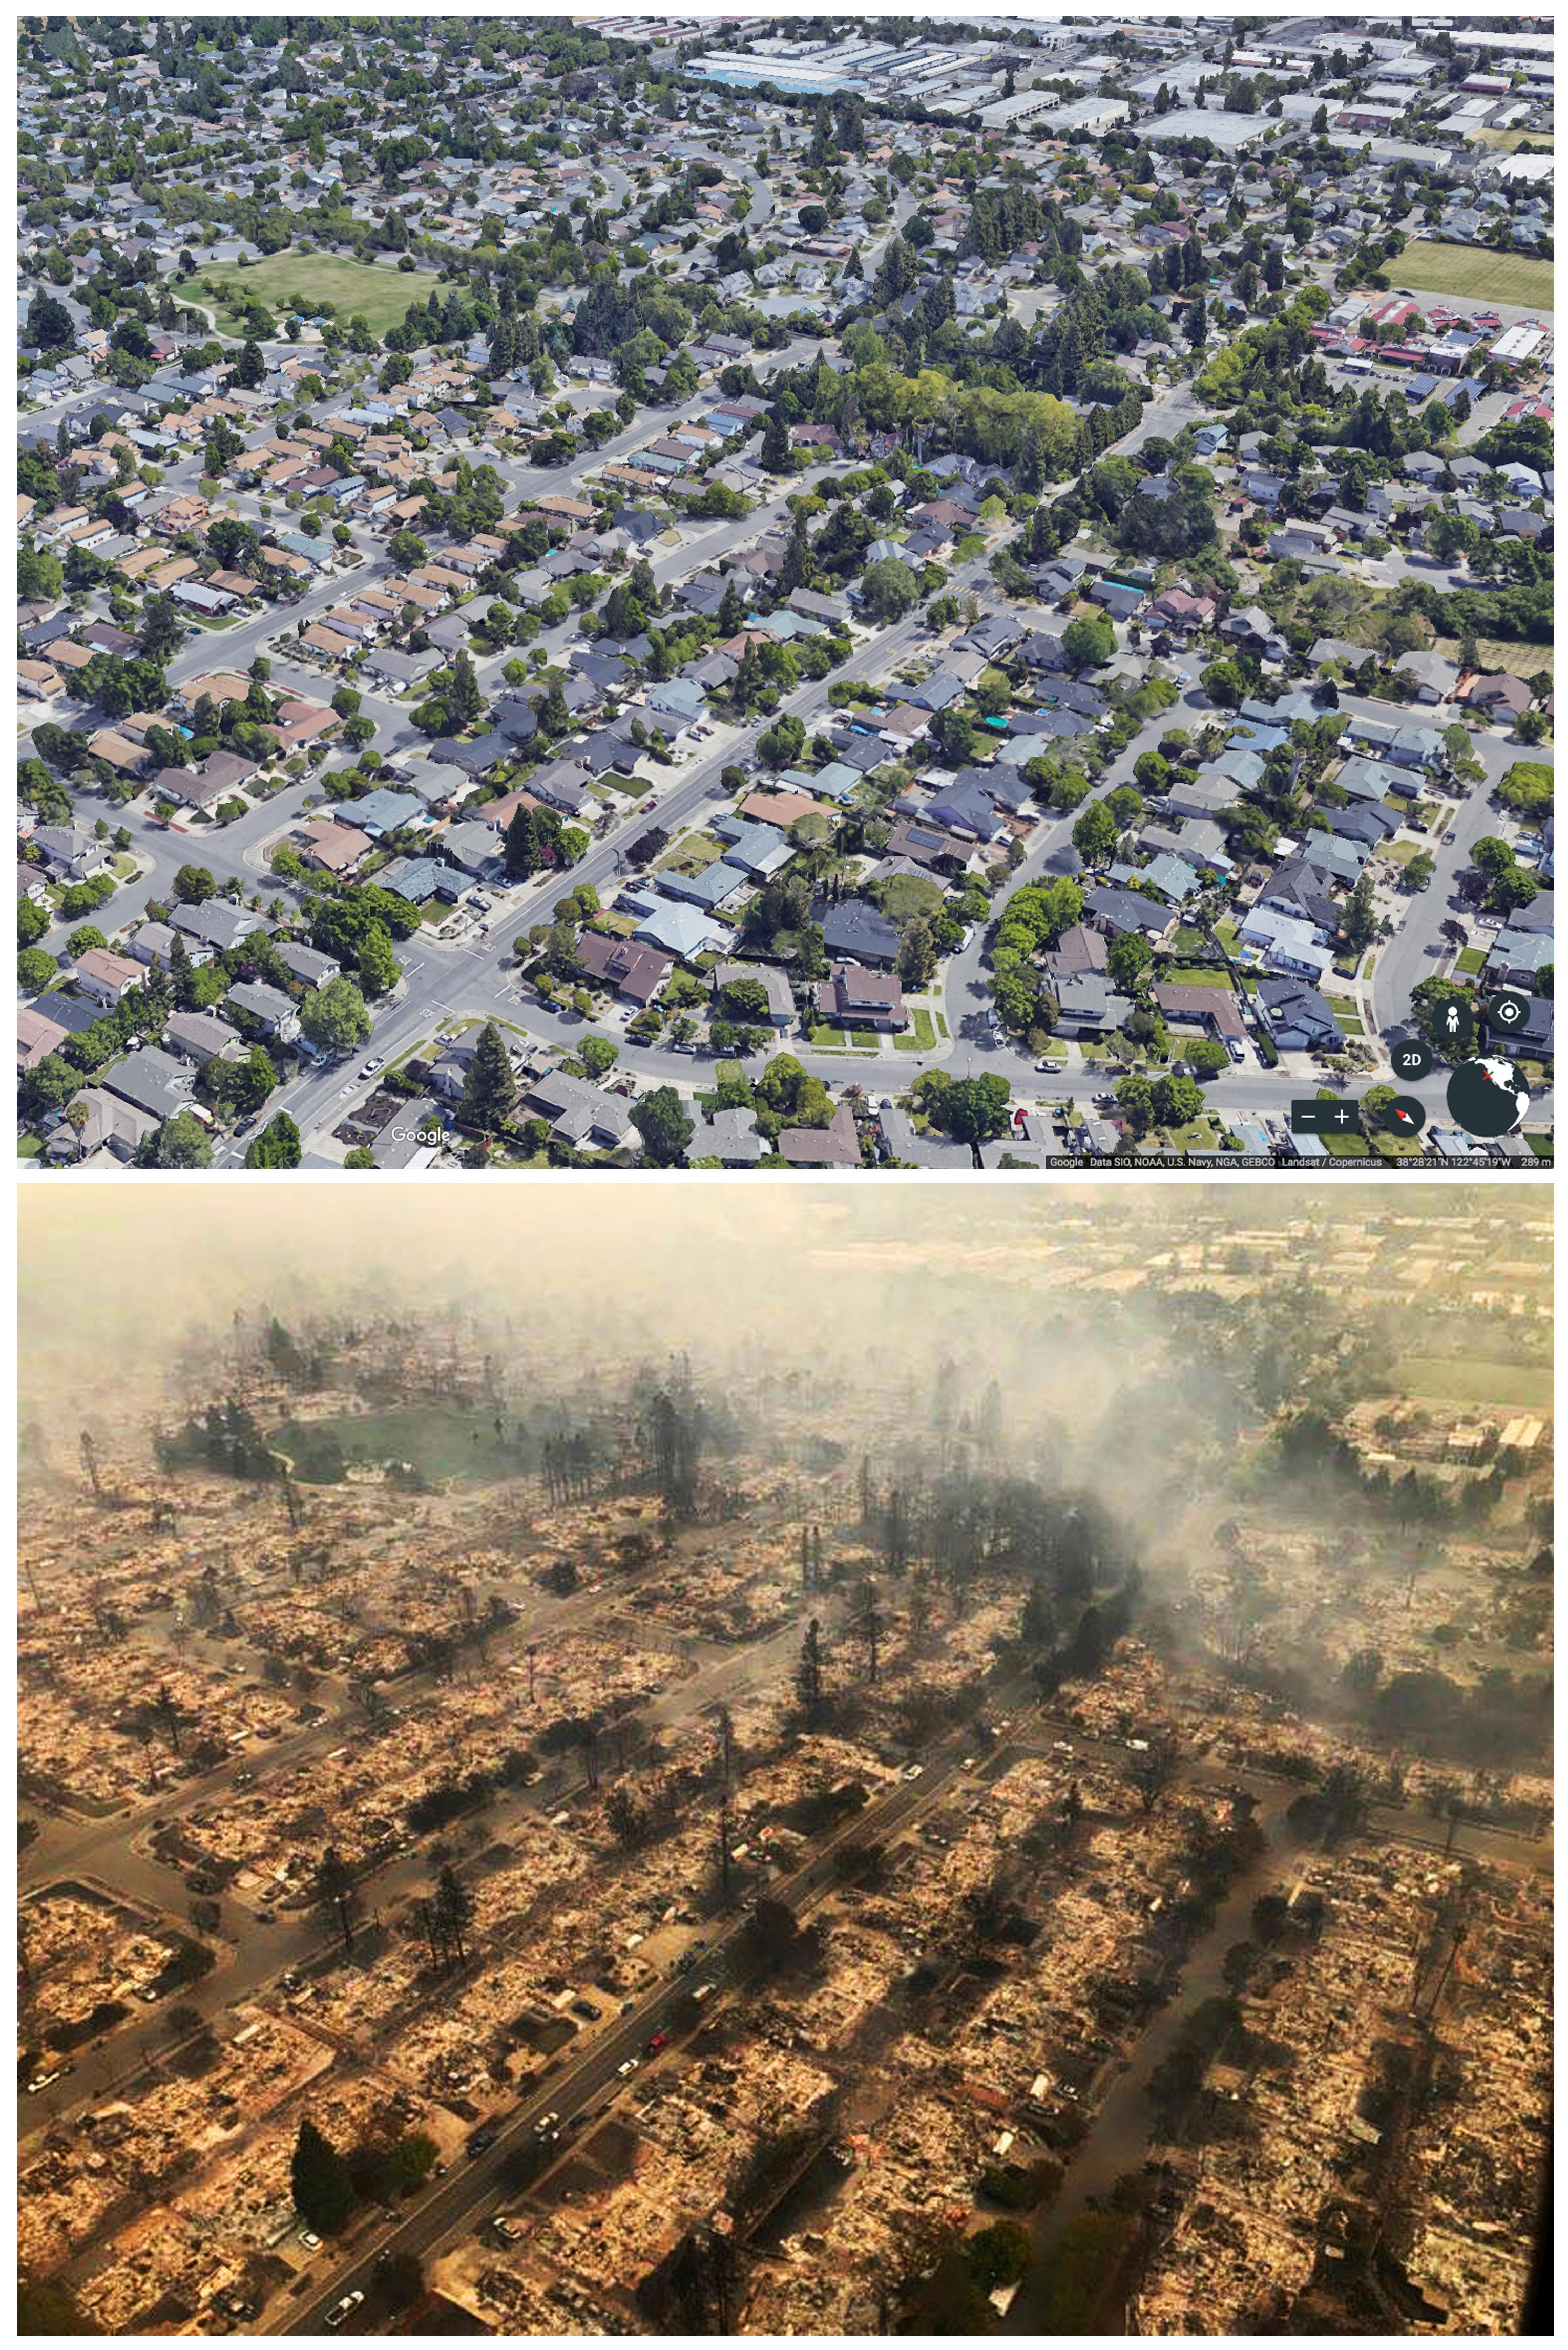 This combination of photos shows the Coffey Park neighborhood of Santa Rosa, Calif. The bottom image taken Monday, Oct. 9, 2017, and provided by the California Highway Patrol Golden Gate Division, shows the damage after a wildfire swept through the area. The top undated image provided by Google Earth shows the area before the fire. (Google Earth (top), California Highway Patrol Golden Gate Division (bottom) via AP)